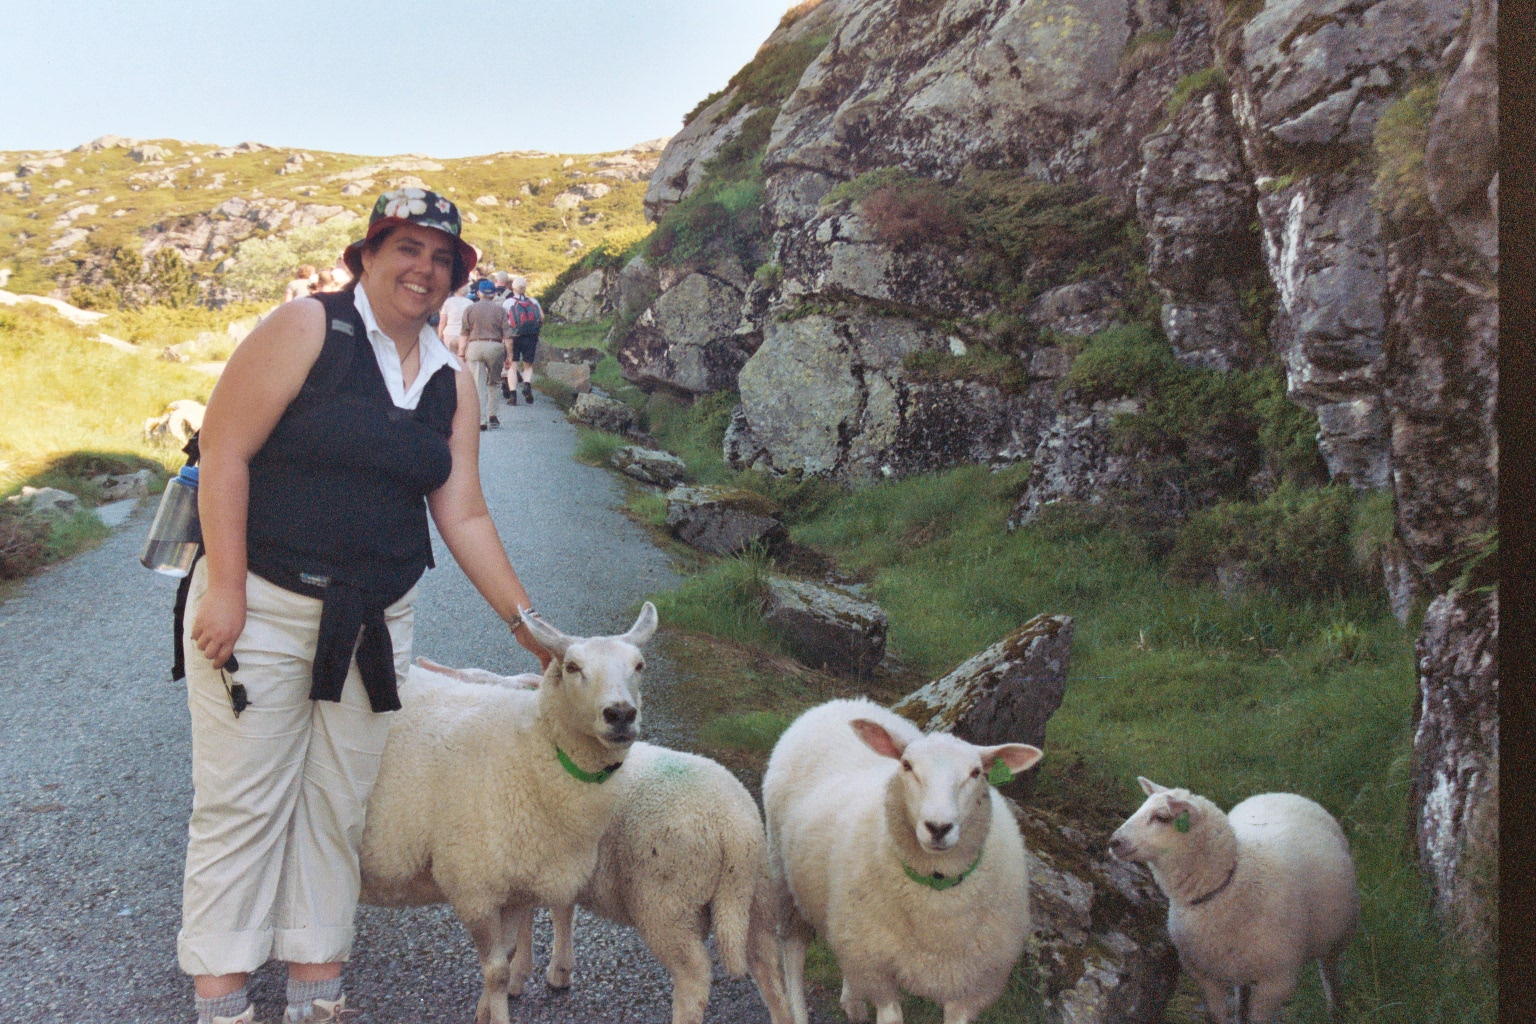 Me petting sheep in Norway